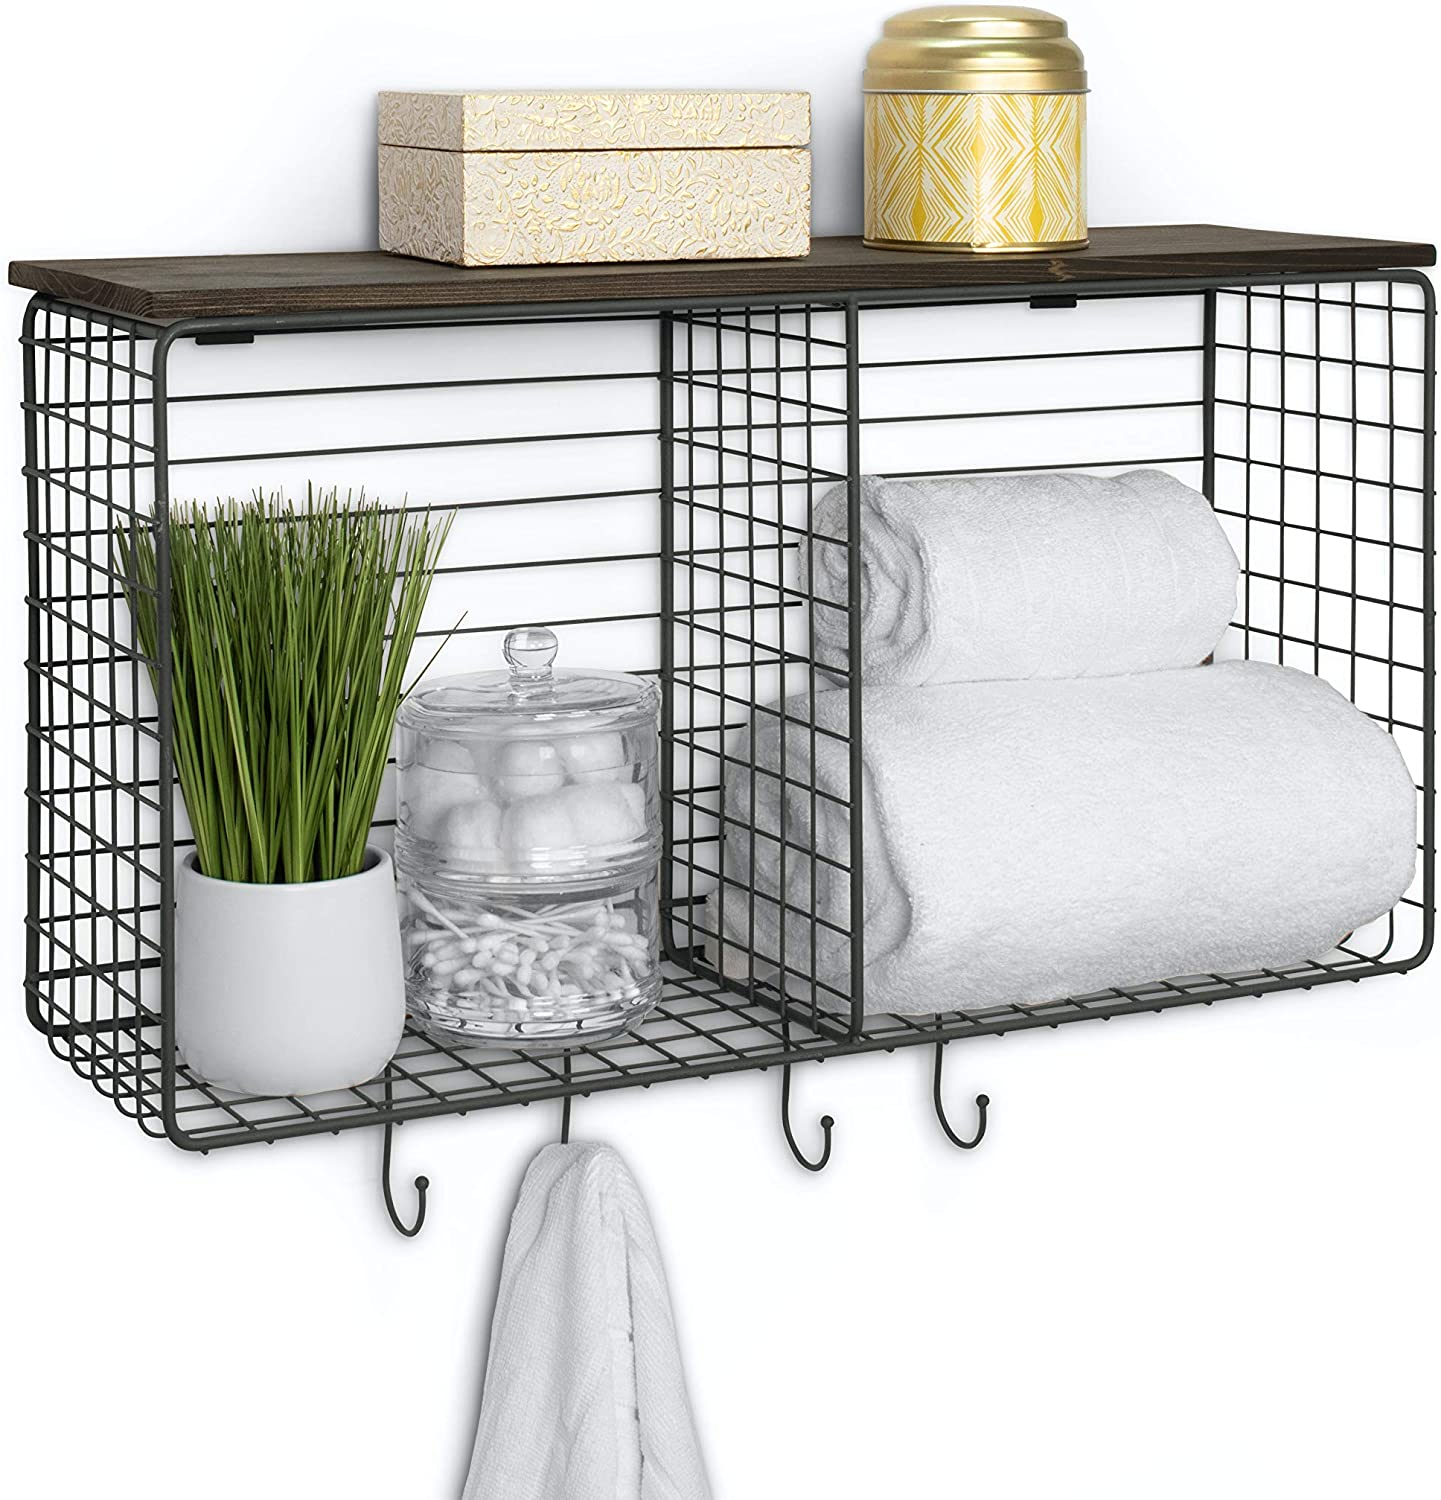 Spectrum Diversified Vintage Cube & Hook Station with Wood Shelf Wall-Mounted Entryway Organization Cube Storage & Shelf with Hooks, Entryway & Home Office Décor, One, Industrial Gray